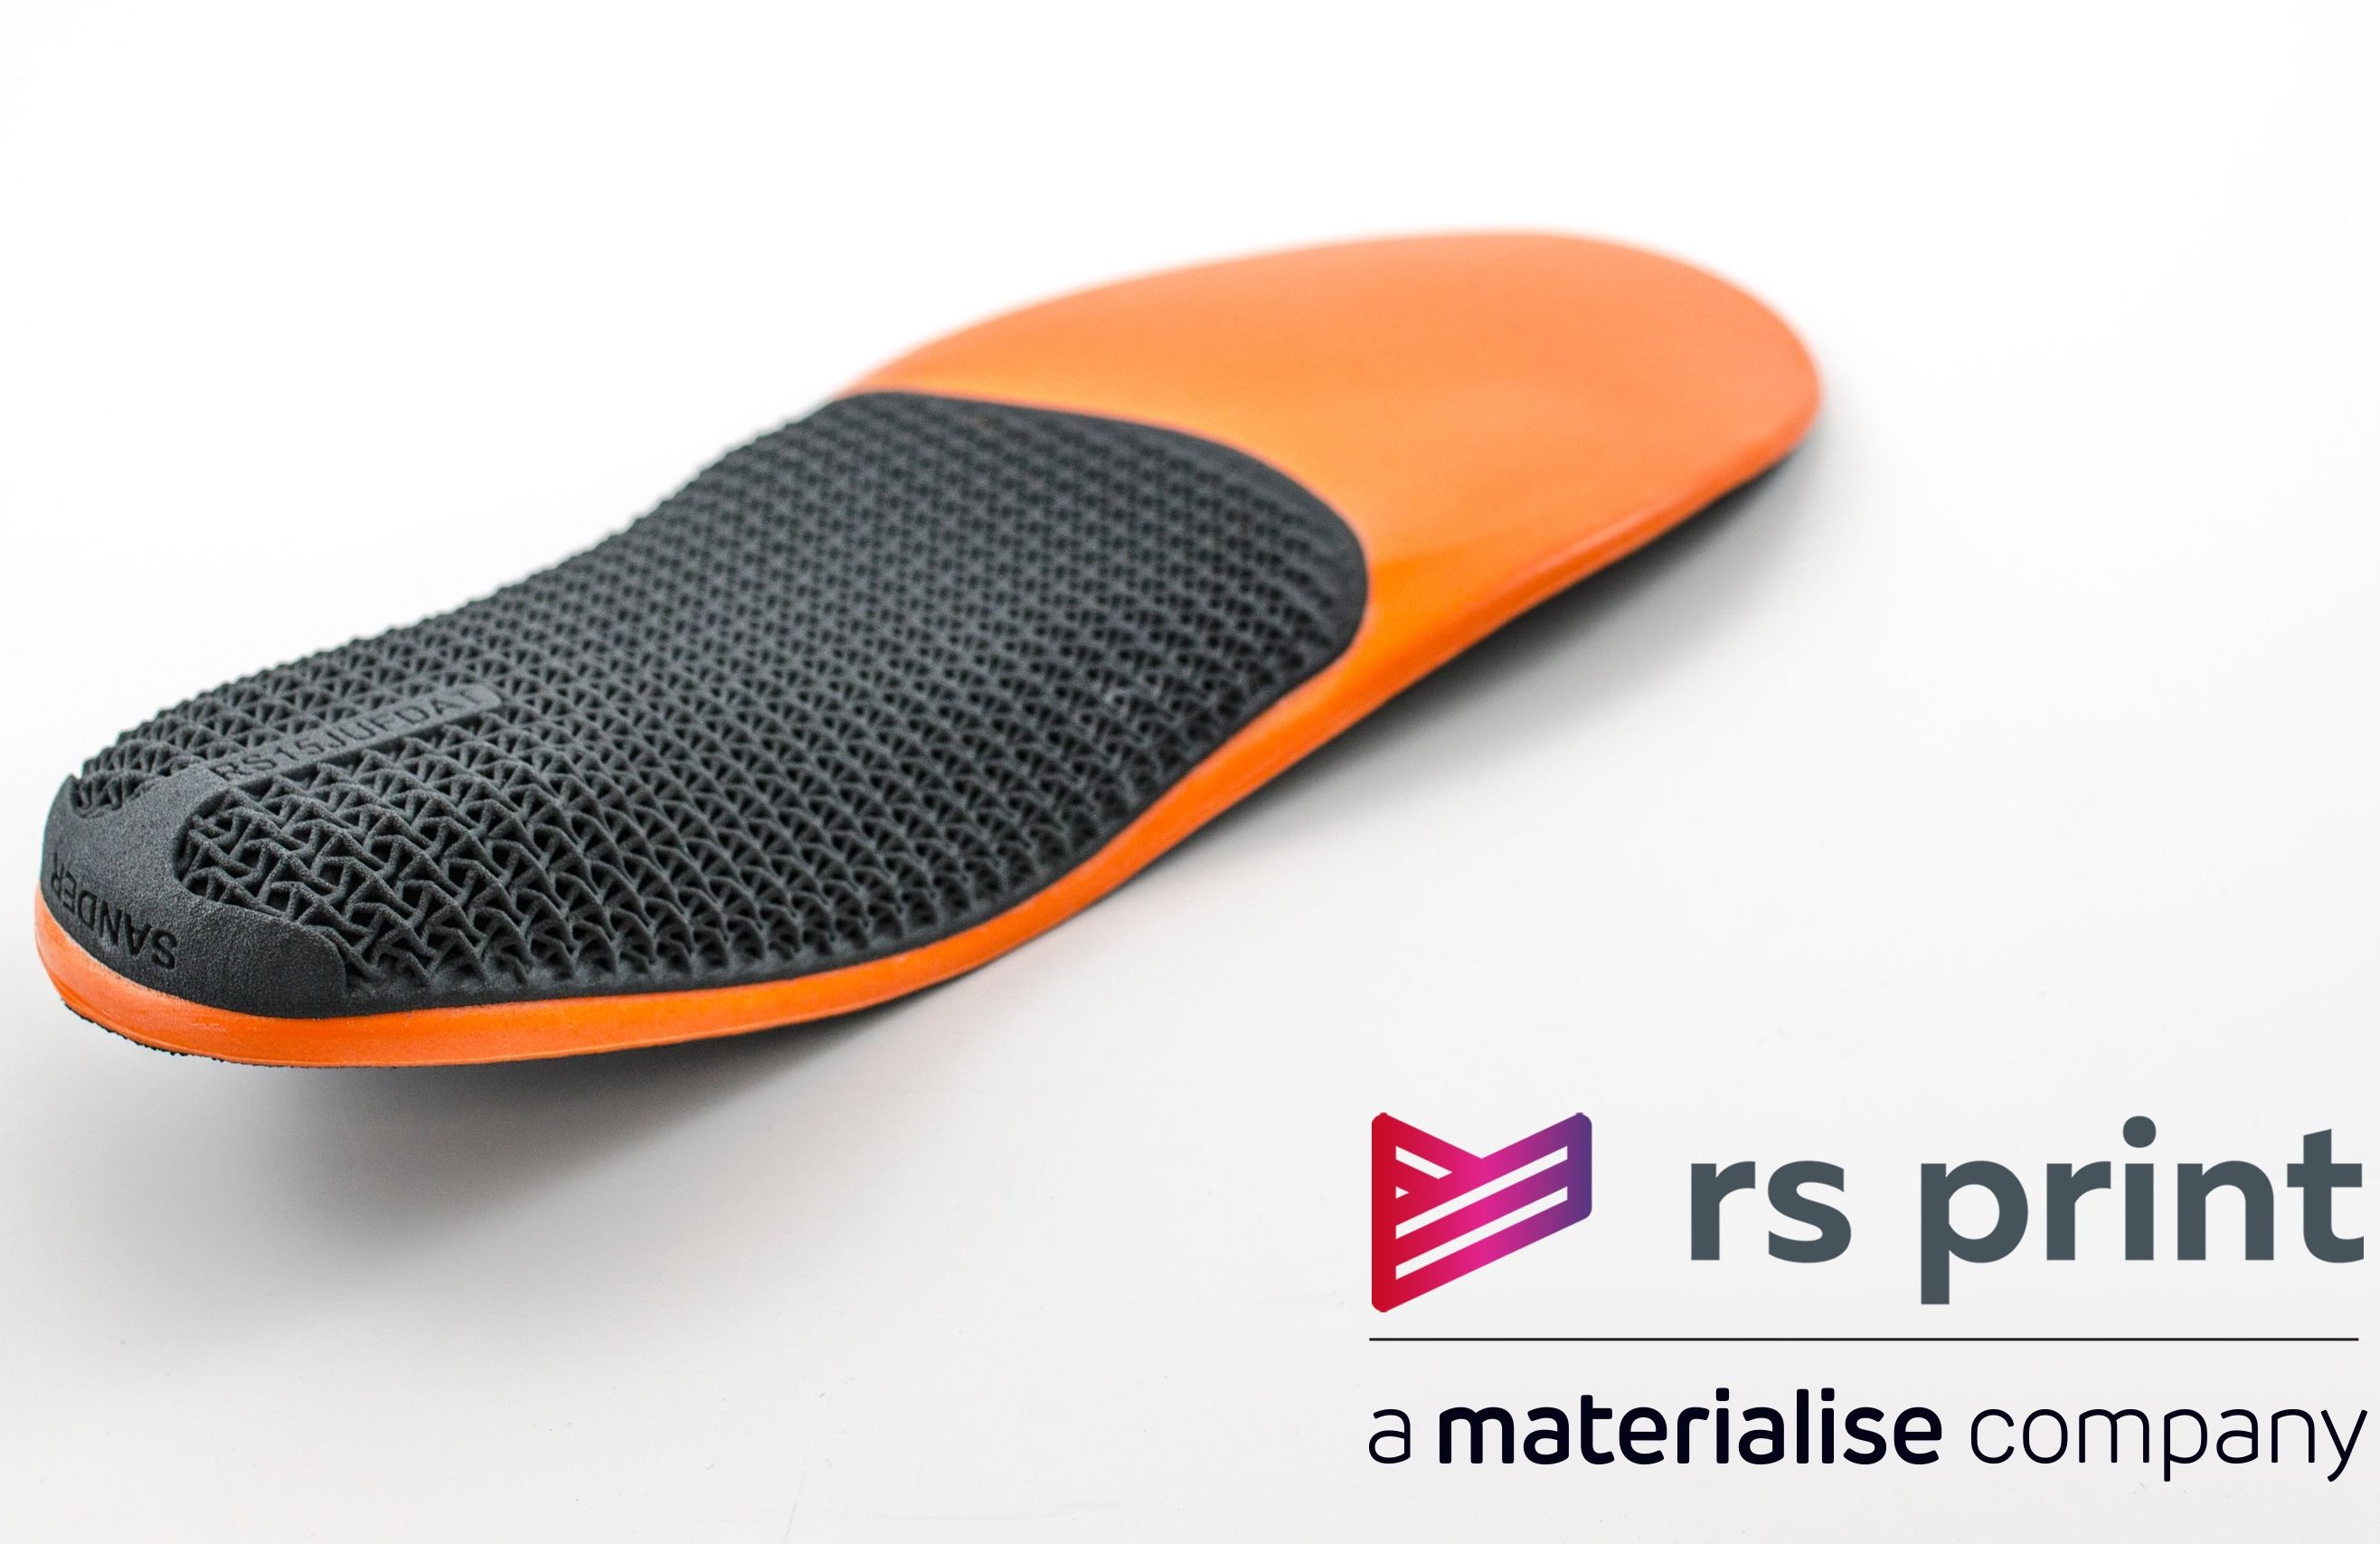 Materialise has continued to invest in future growth opportunities such as RS Print, despite its overall fall in revenue. Photo via Materialise.